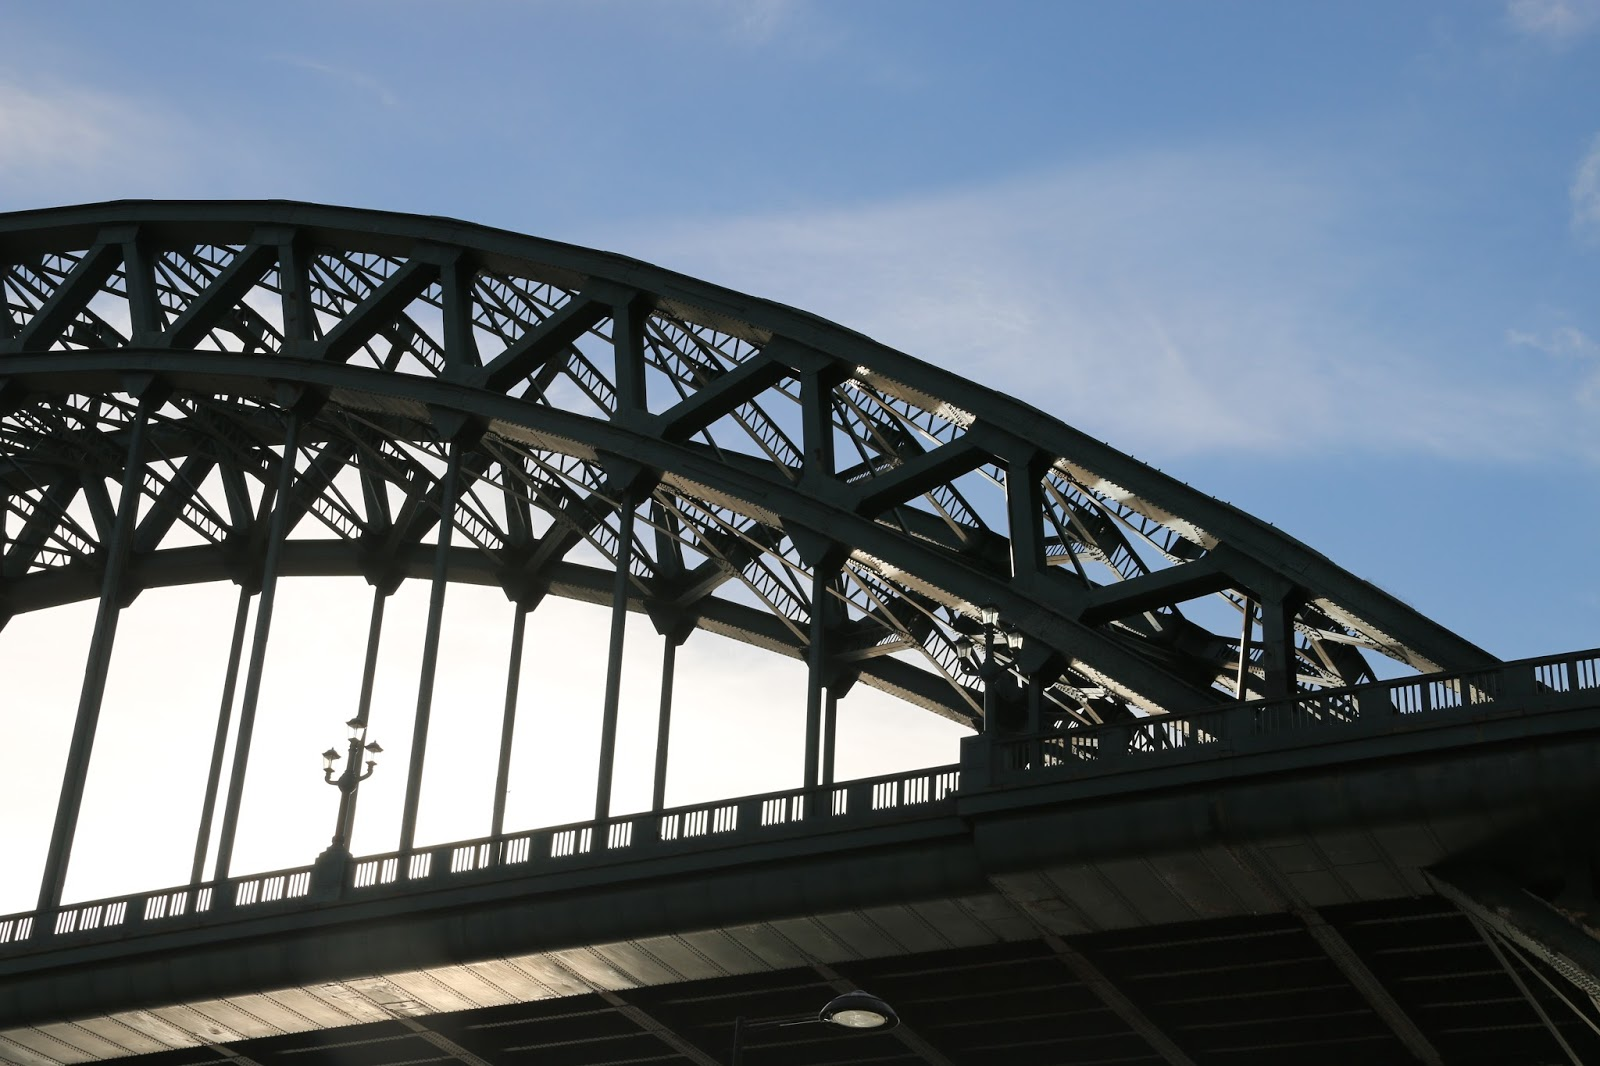 Newcastle Upon Tyne Photograph by India Jackson on WhatLauraLoves UK Blog